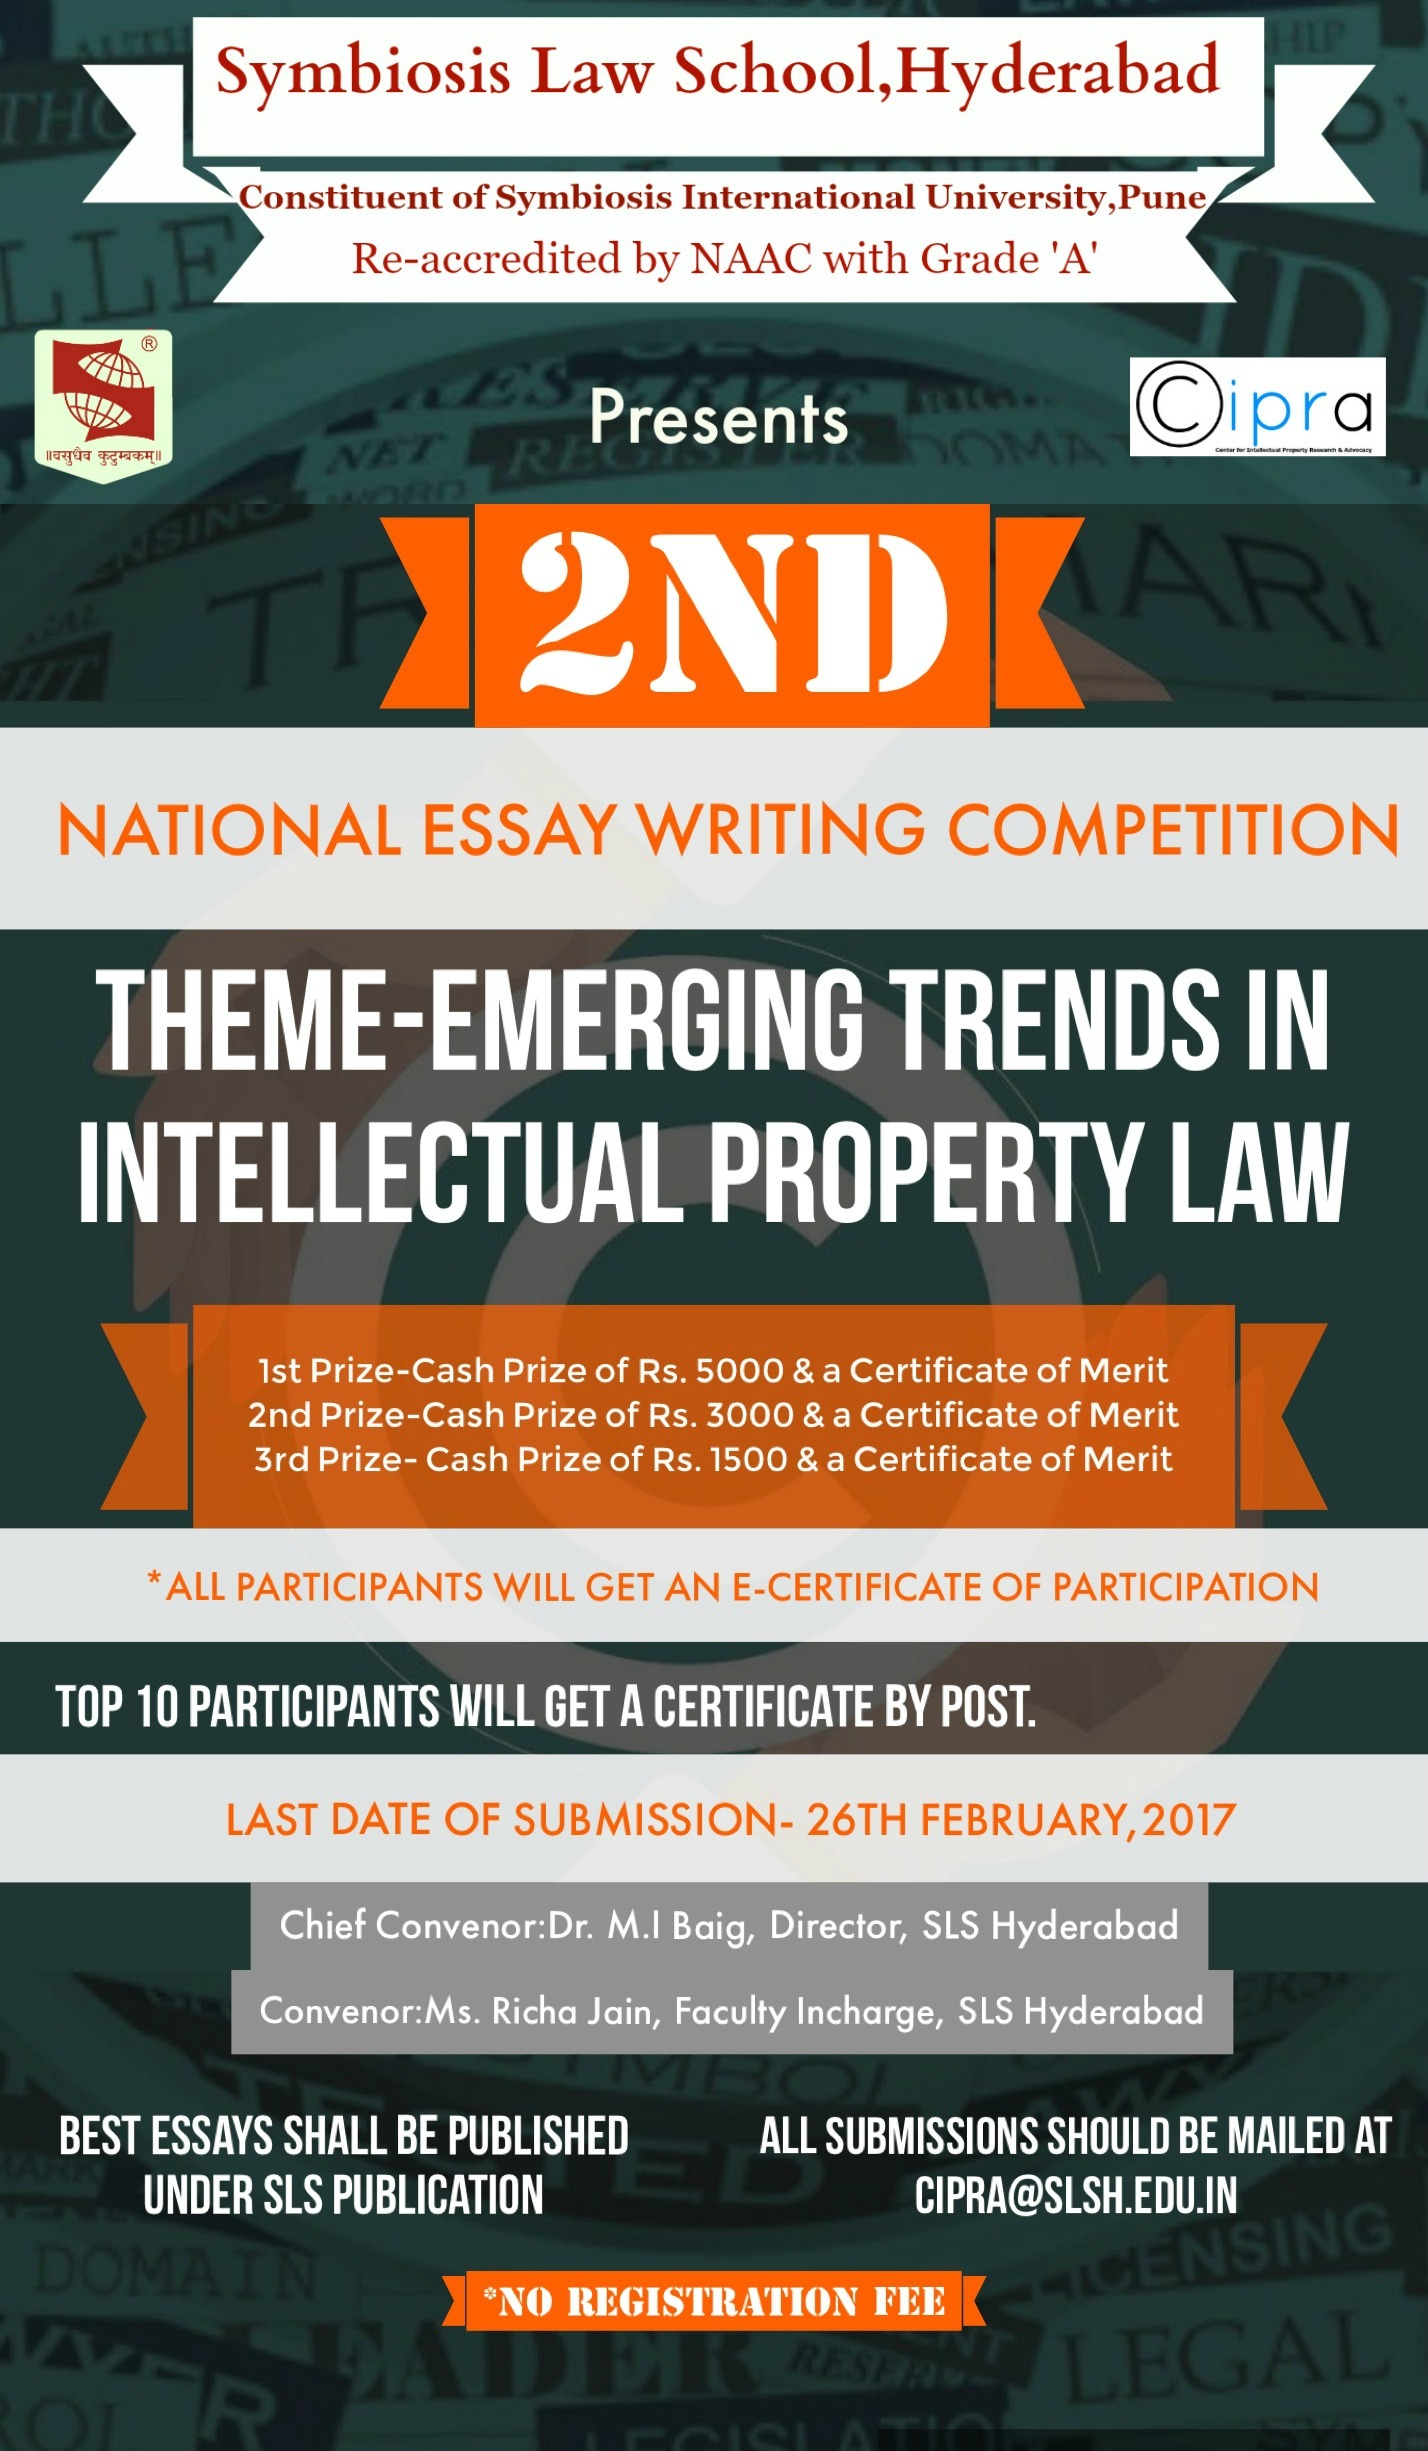 symbiosis law school hyderabad 2nd national essay writing 1